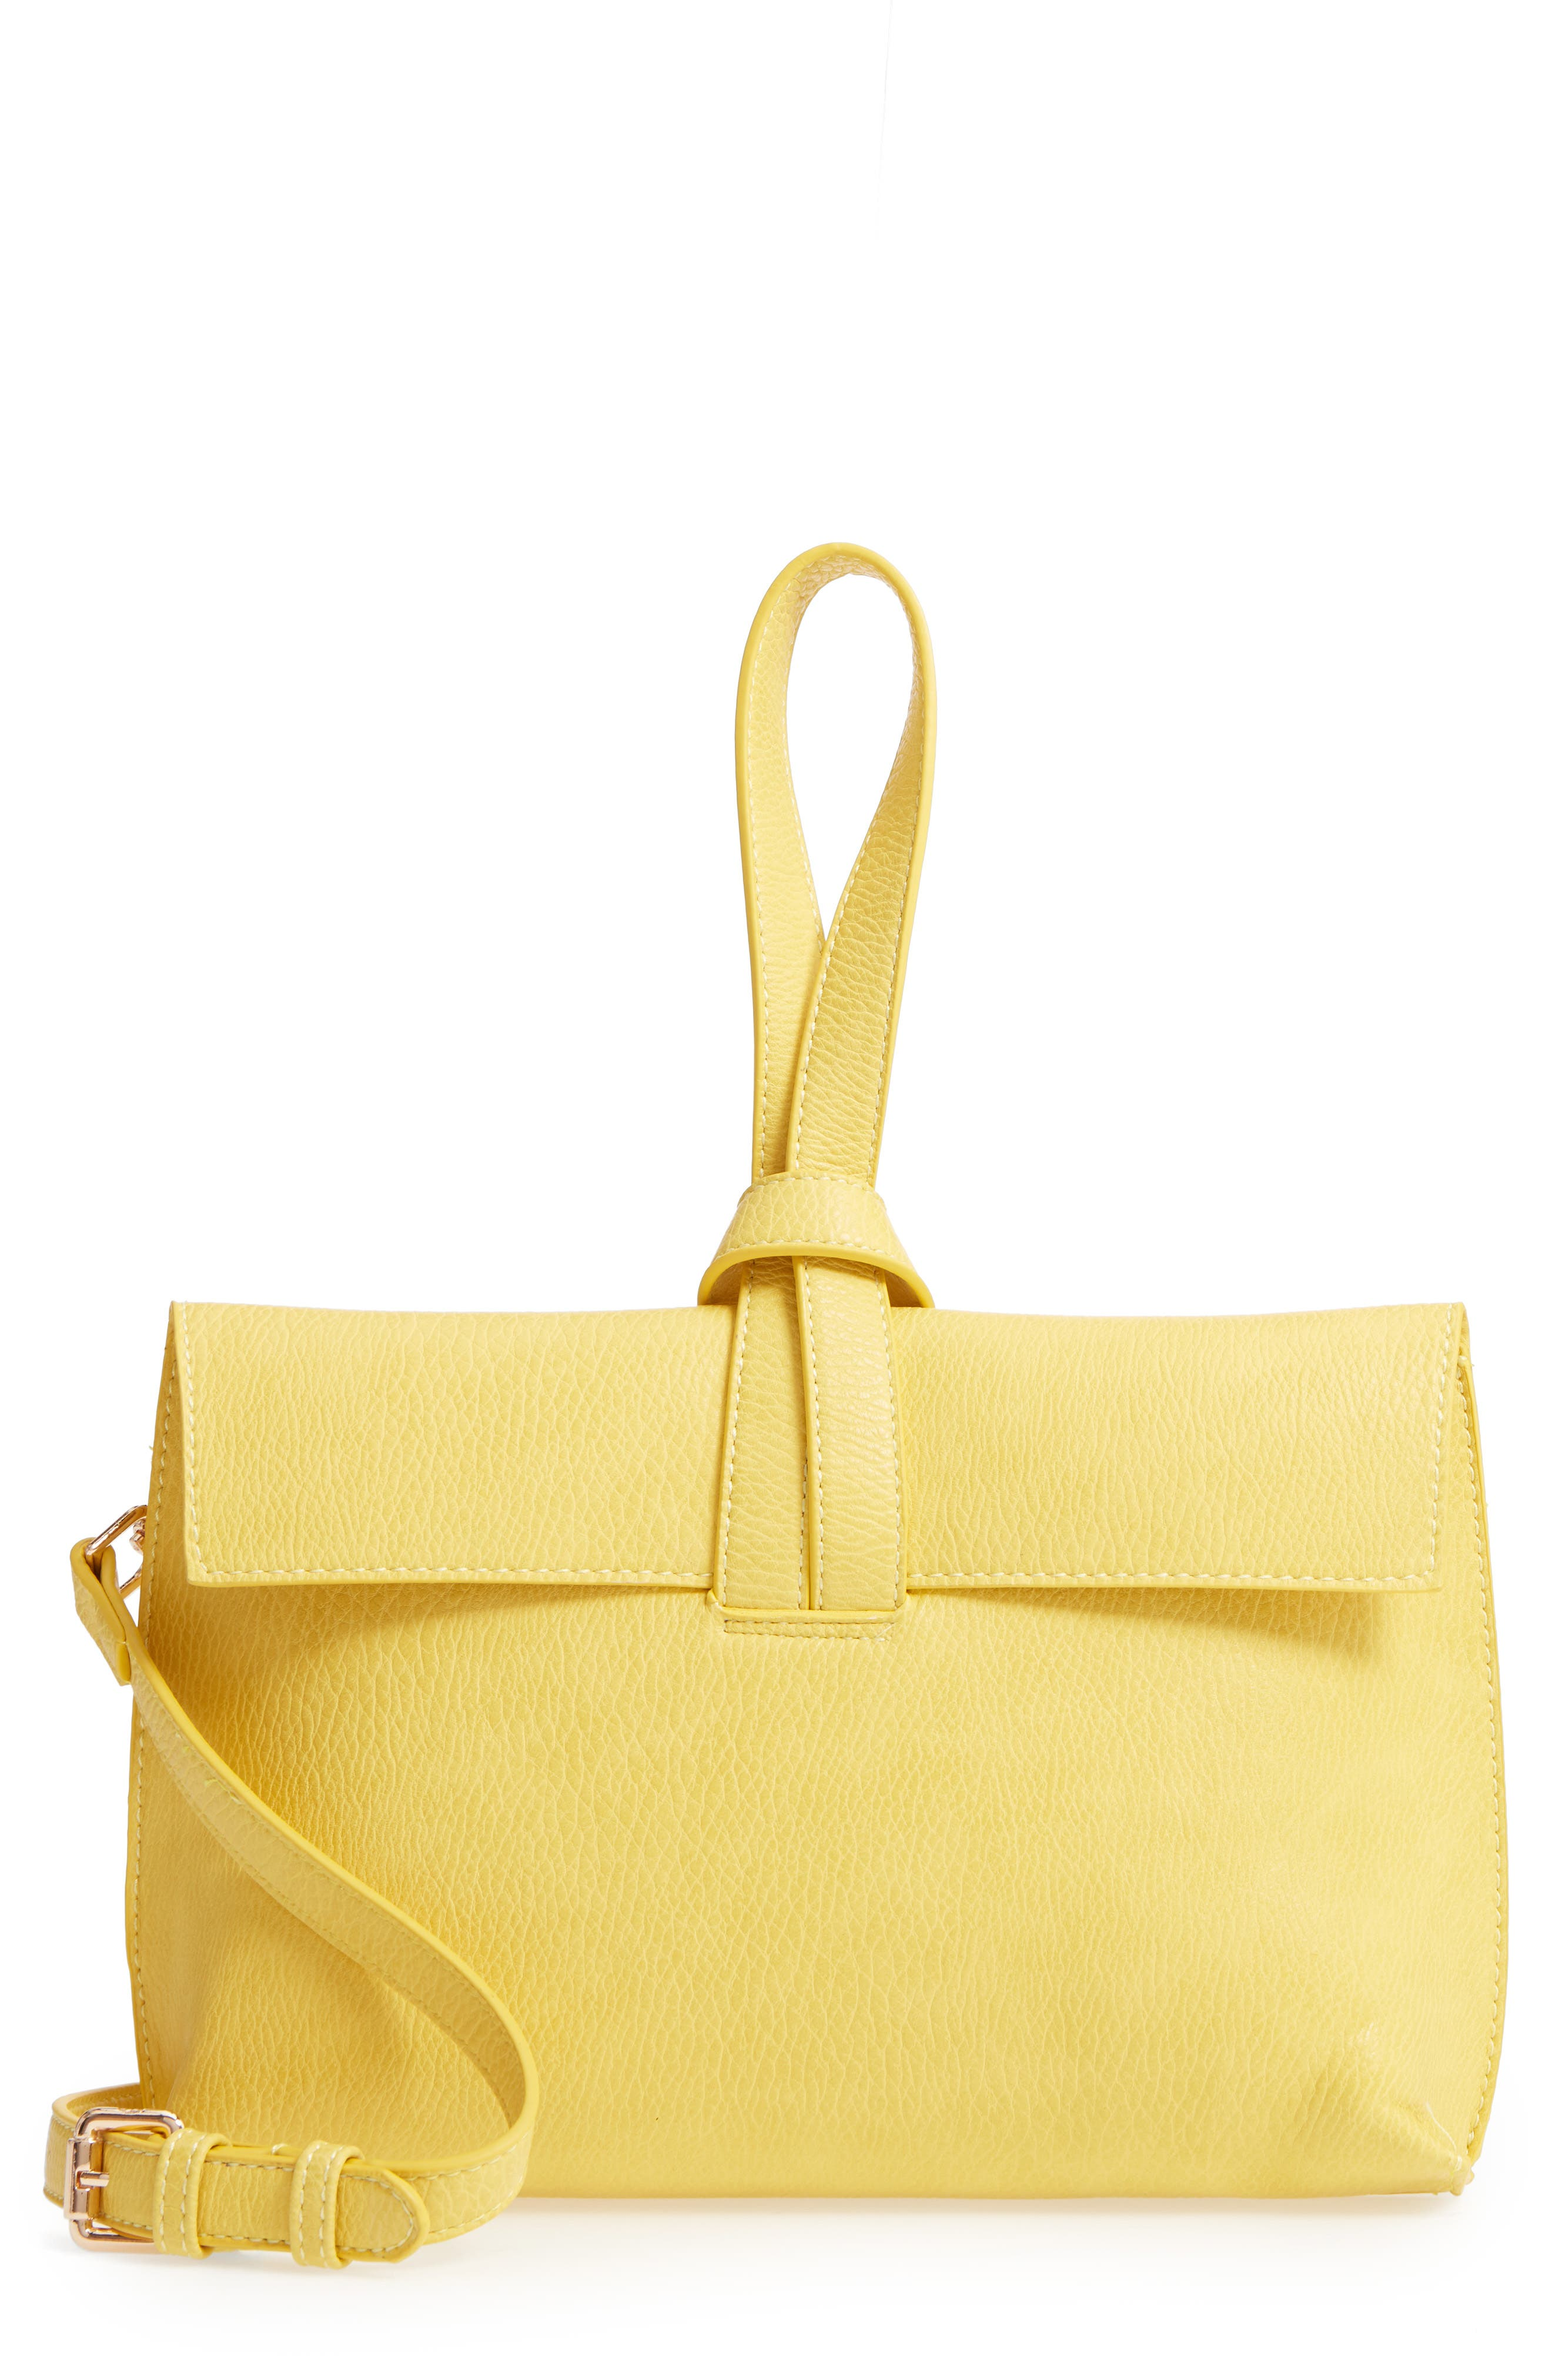 Pull Through Wristlet/Crossbody Bag,                         Main,                         color, Yellow